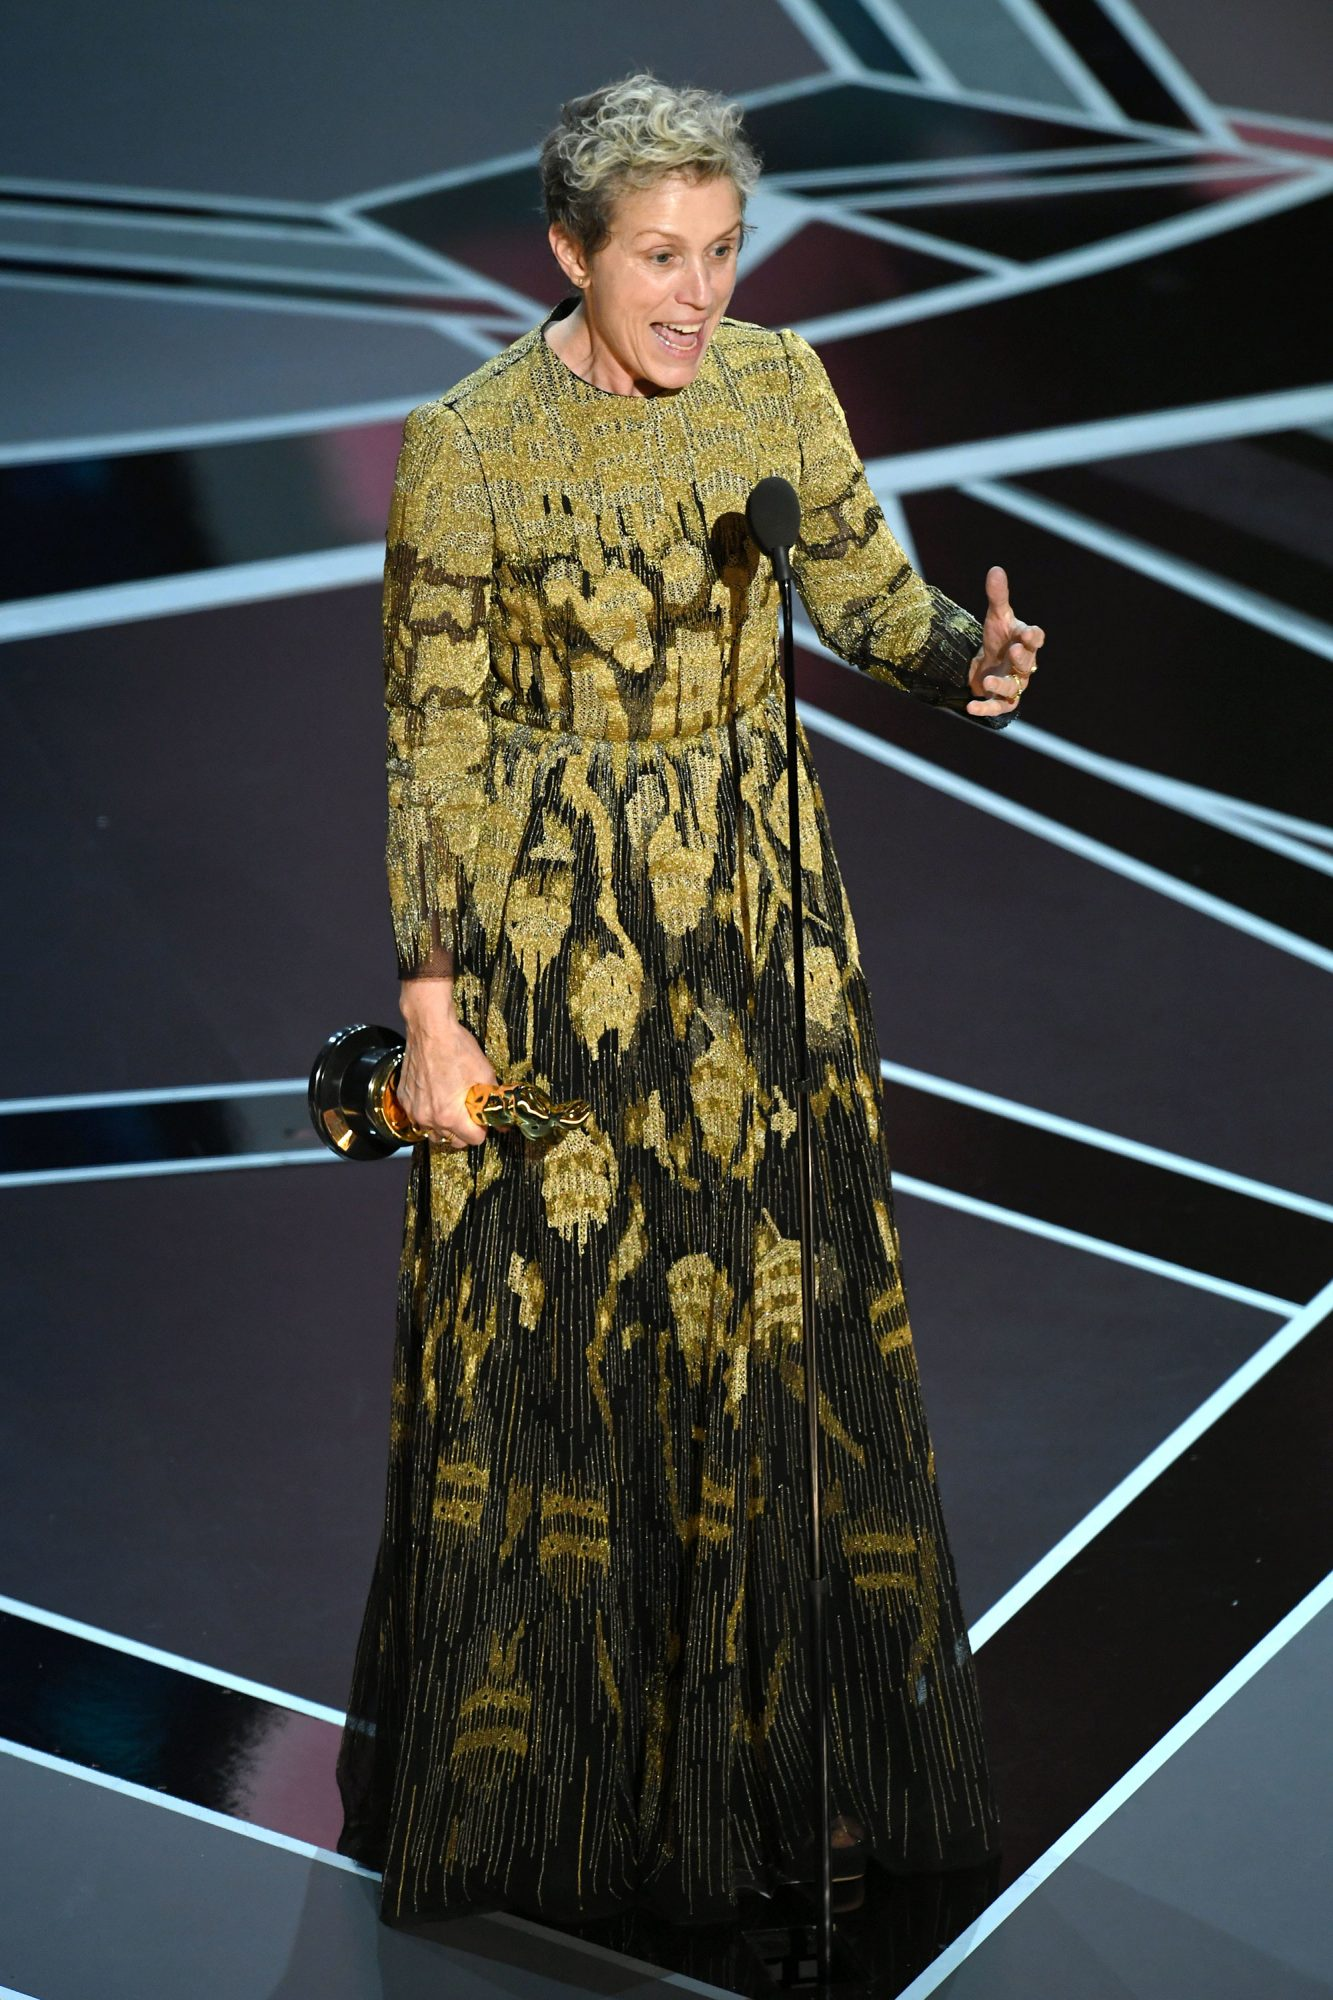 BADASS WOMEN OF THE YEAR: FRANCES MCDORMAND